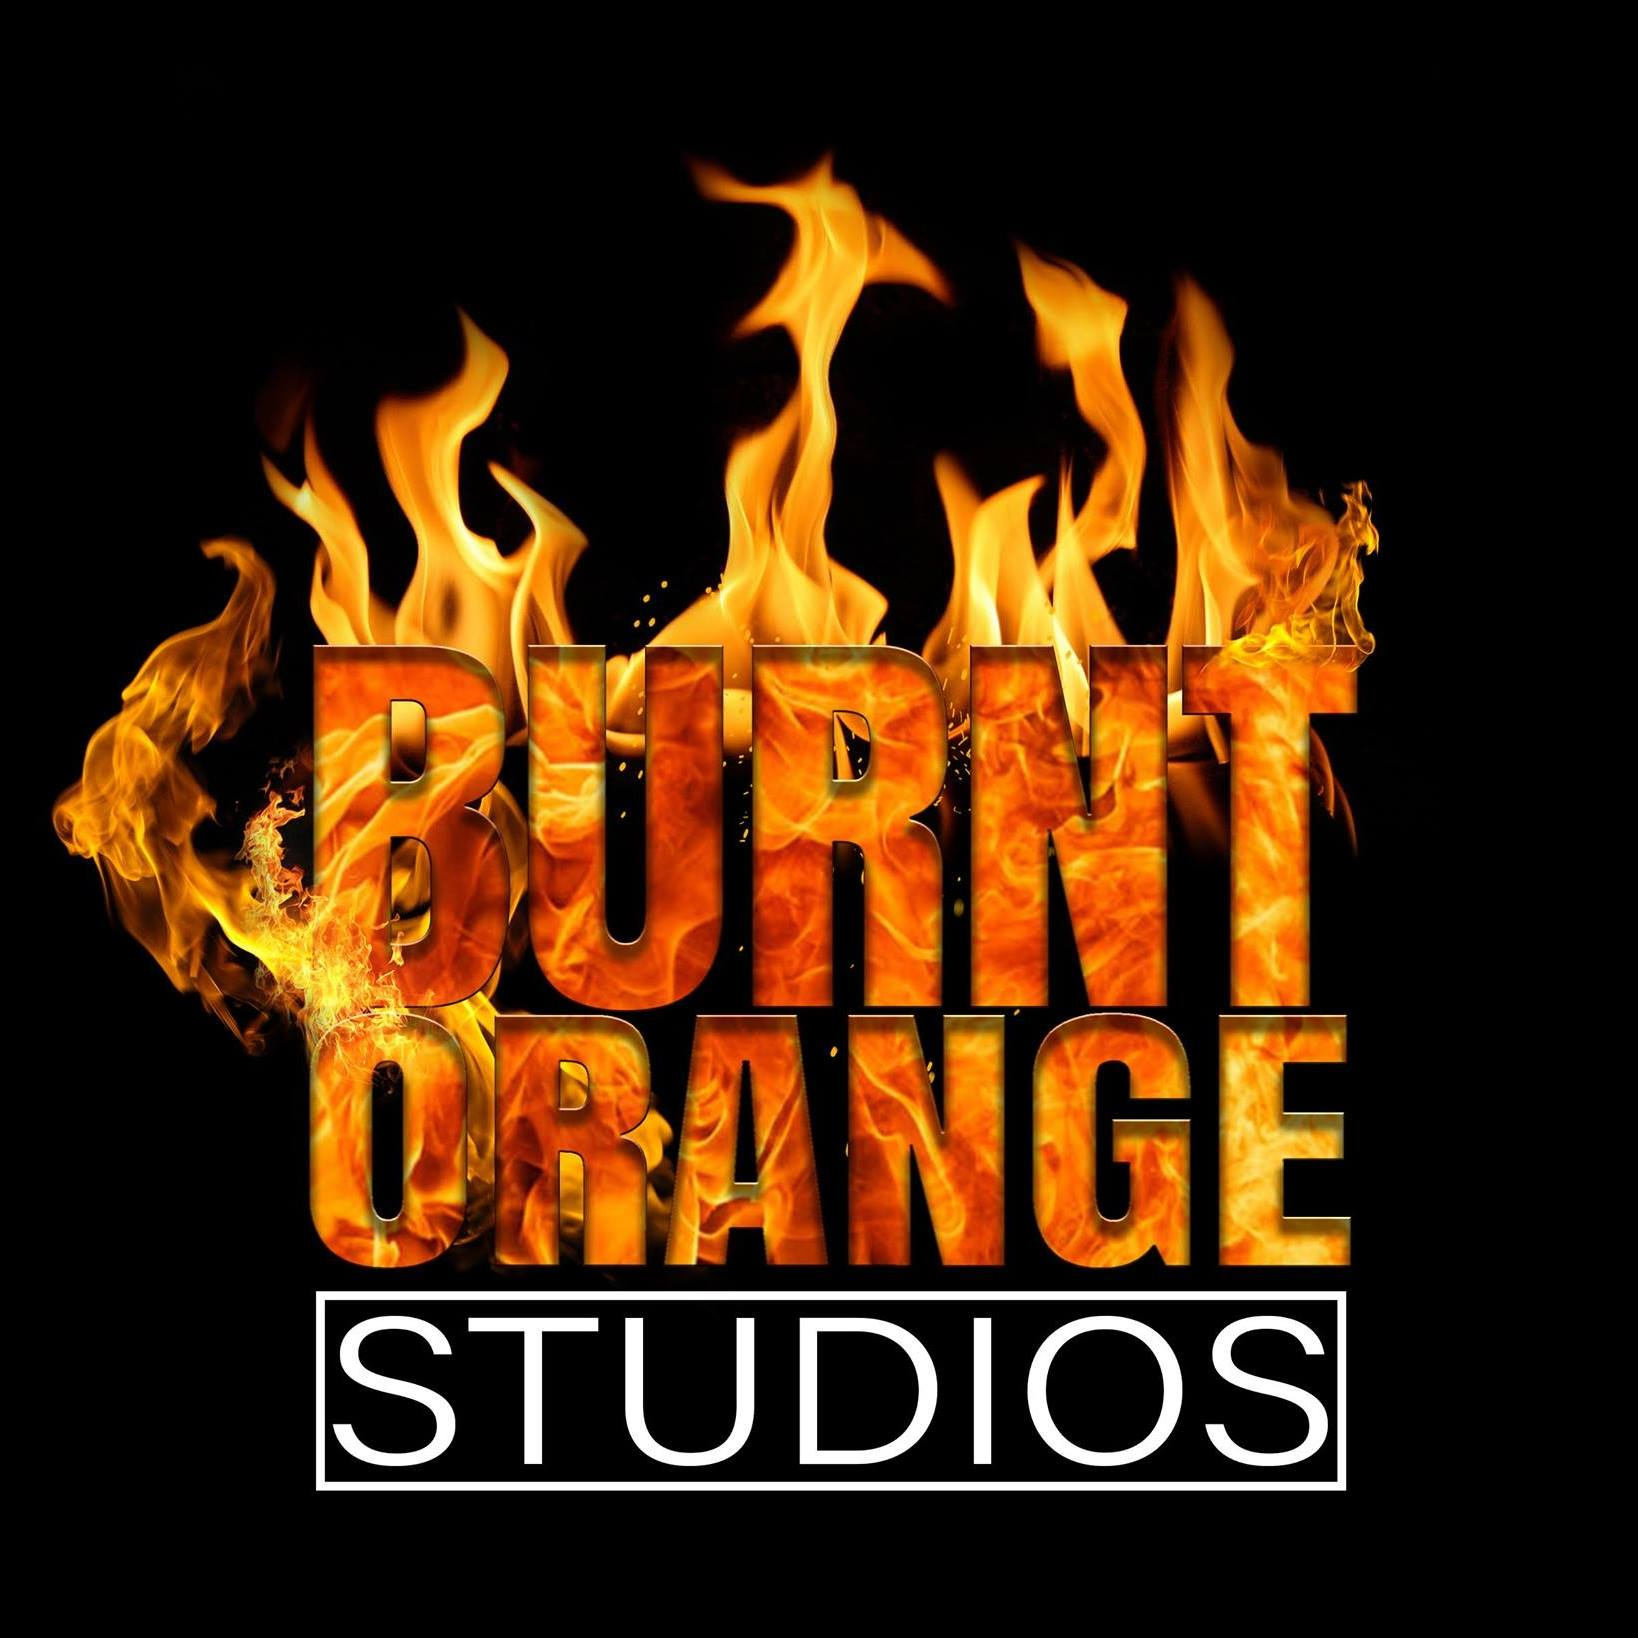 Burnt Orange Studio, LLC